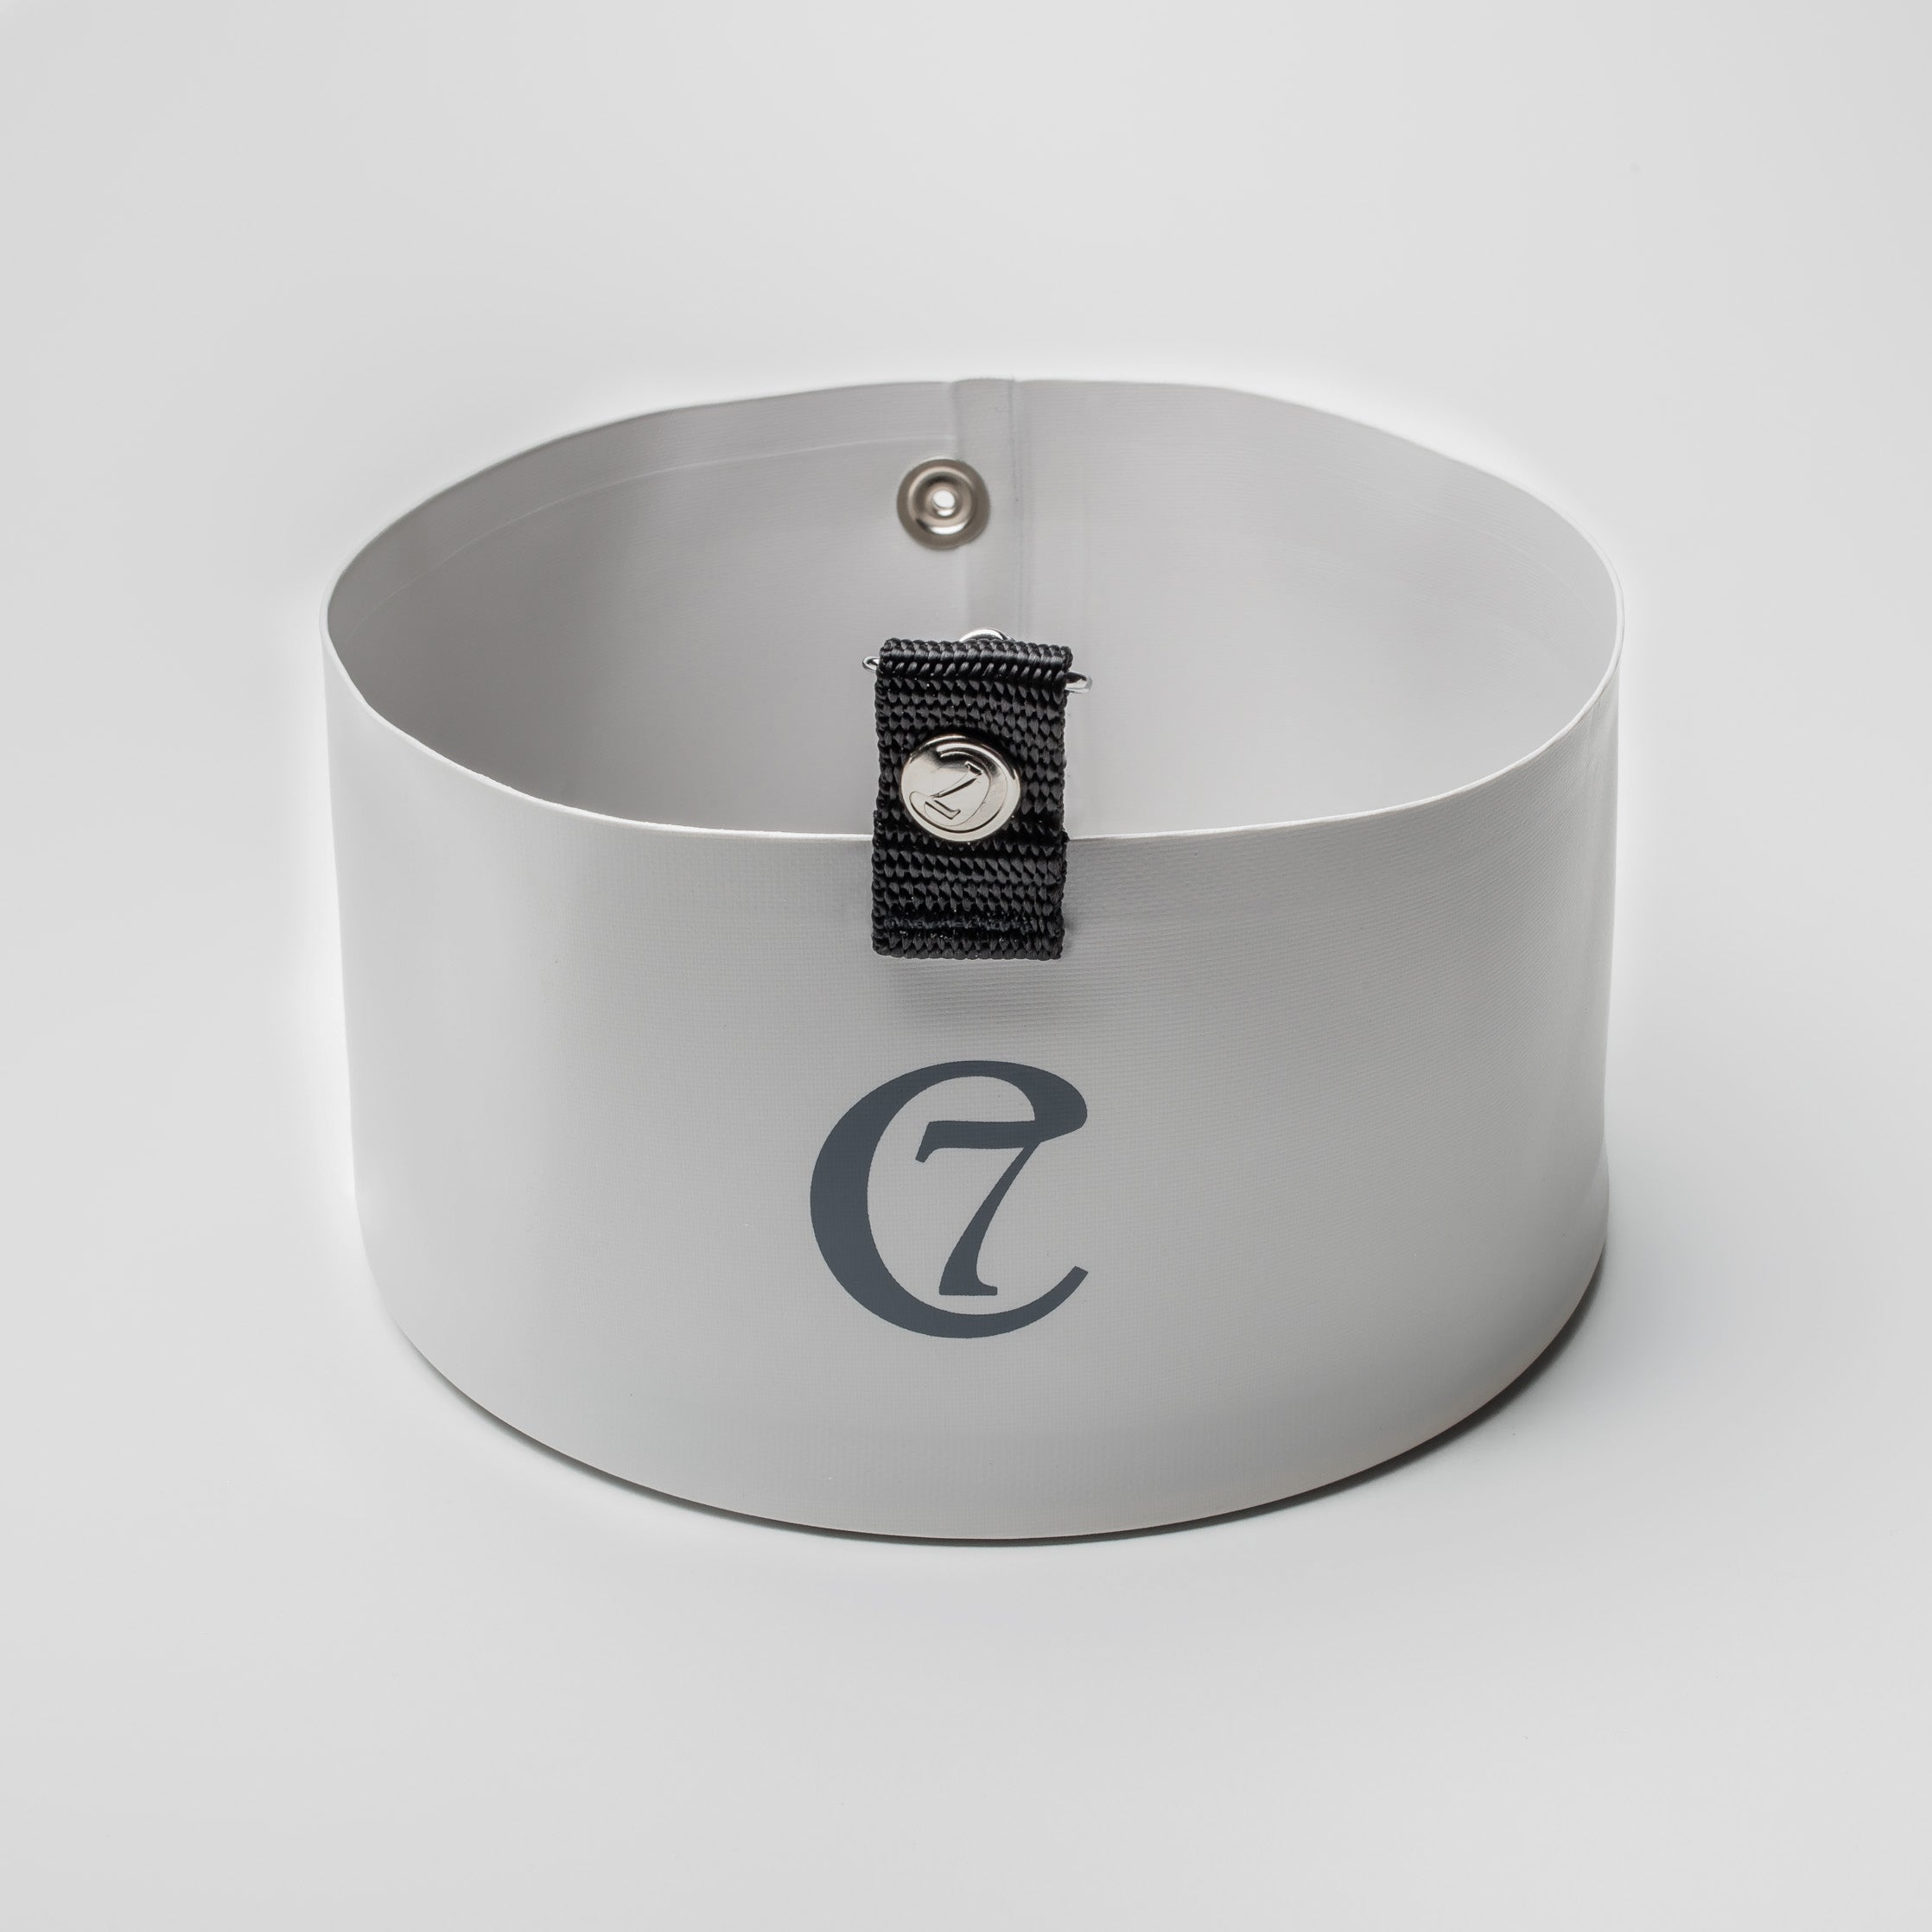 Cloud7 Take Away Dog Bowl